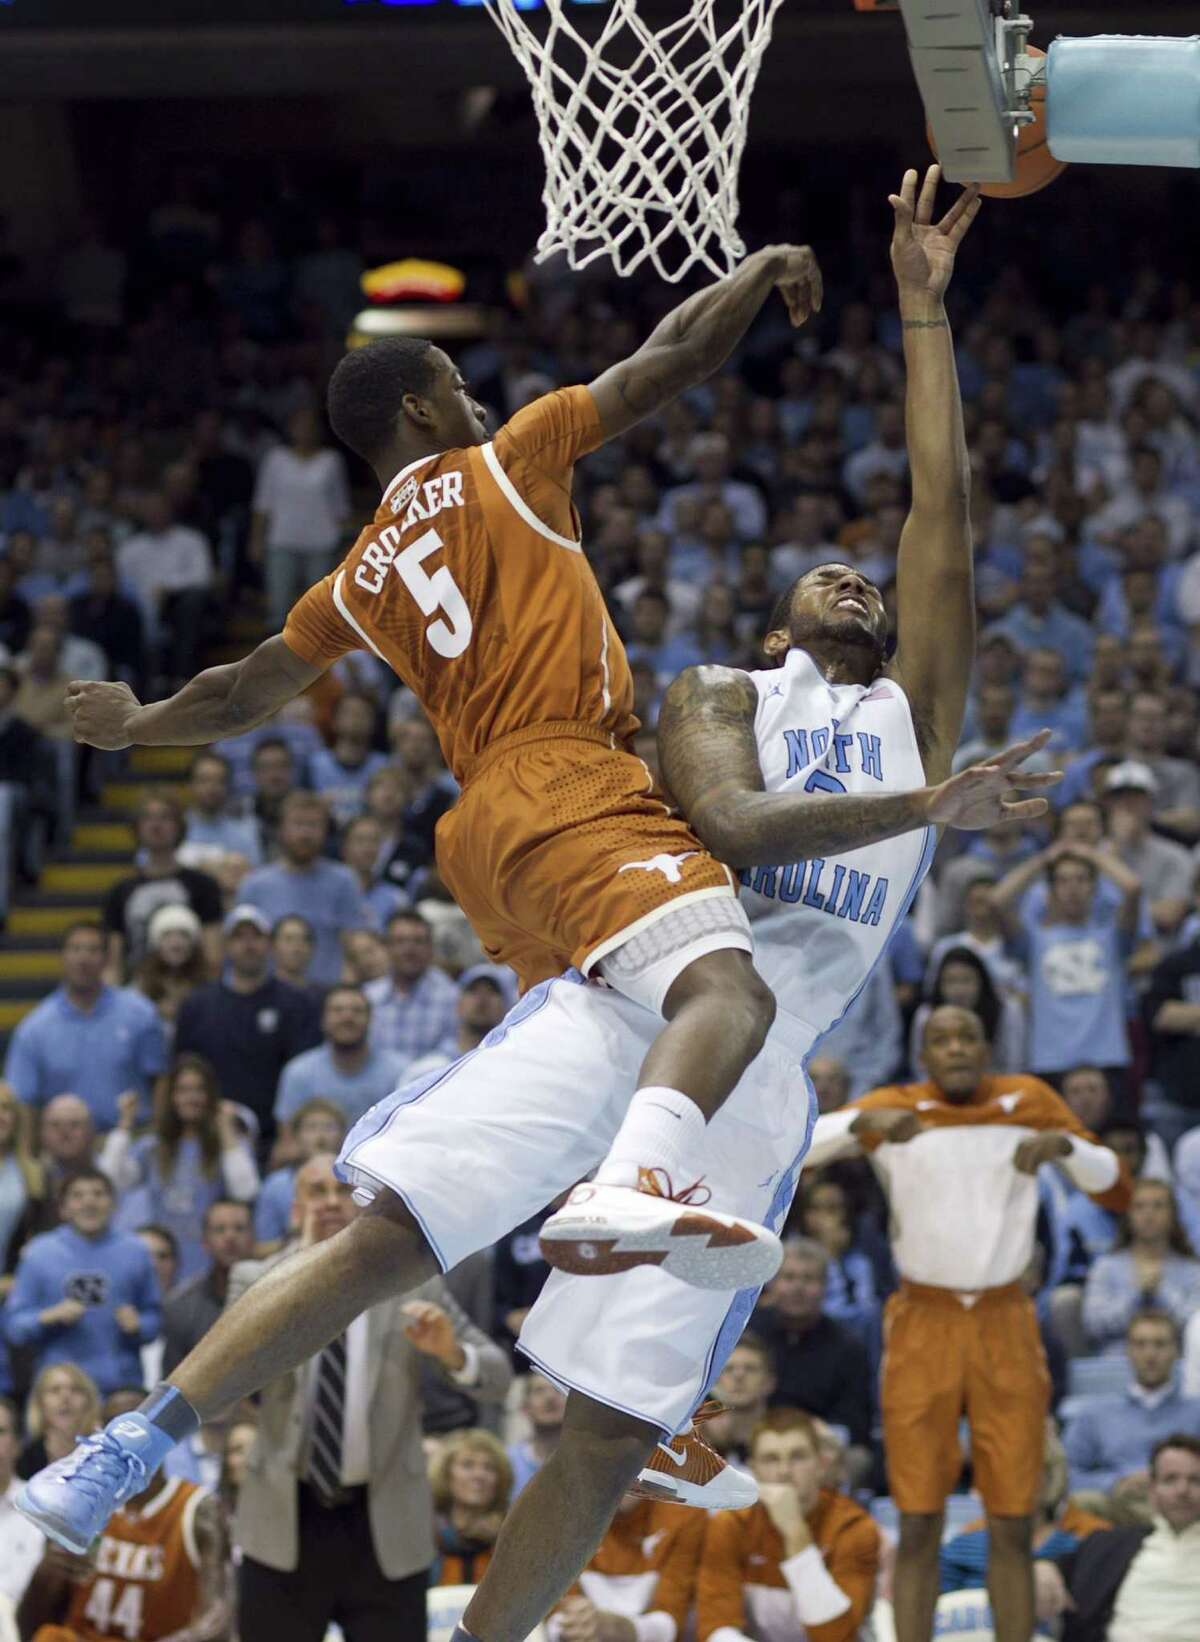 Texas' Damarcus Croaker (5) shows his leaping ability while blocking the shot of North Carolina's Leslie McDonald, but body contact results in a foul.